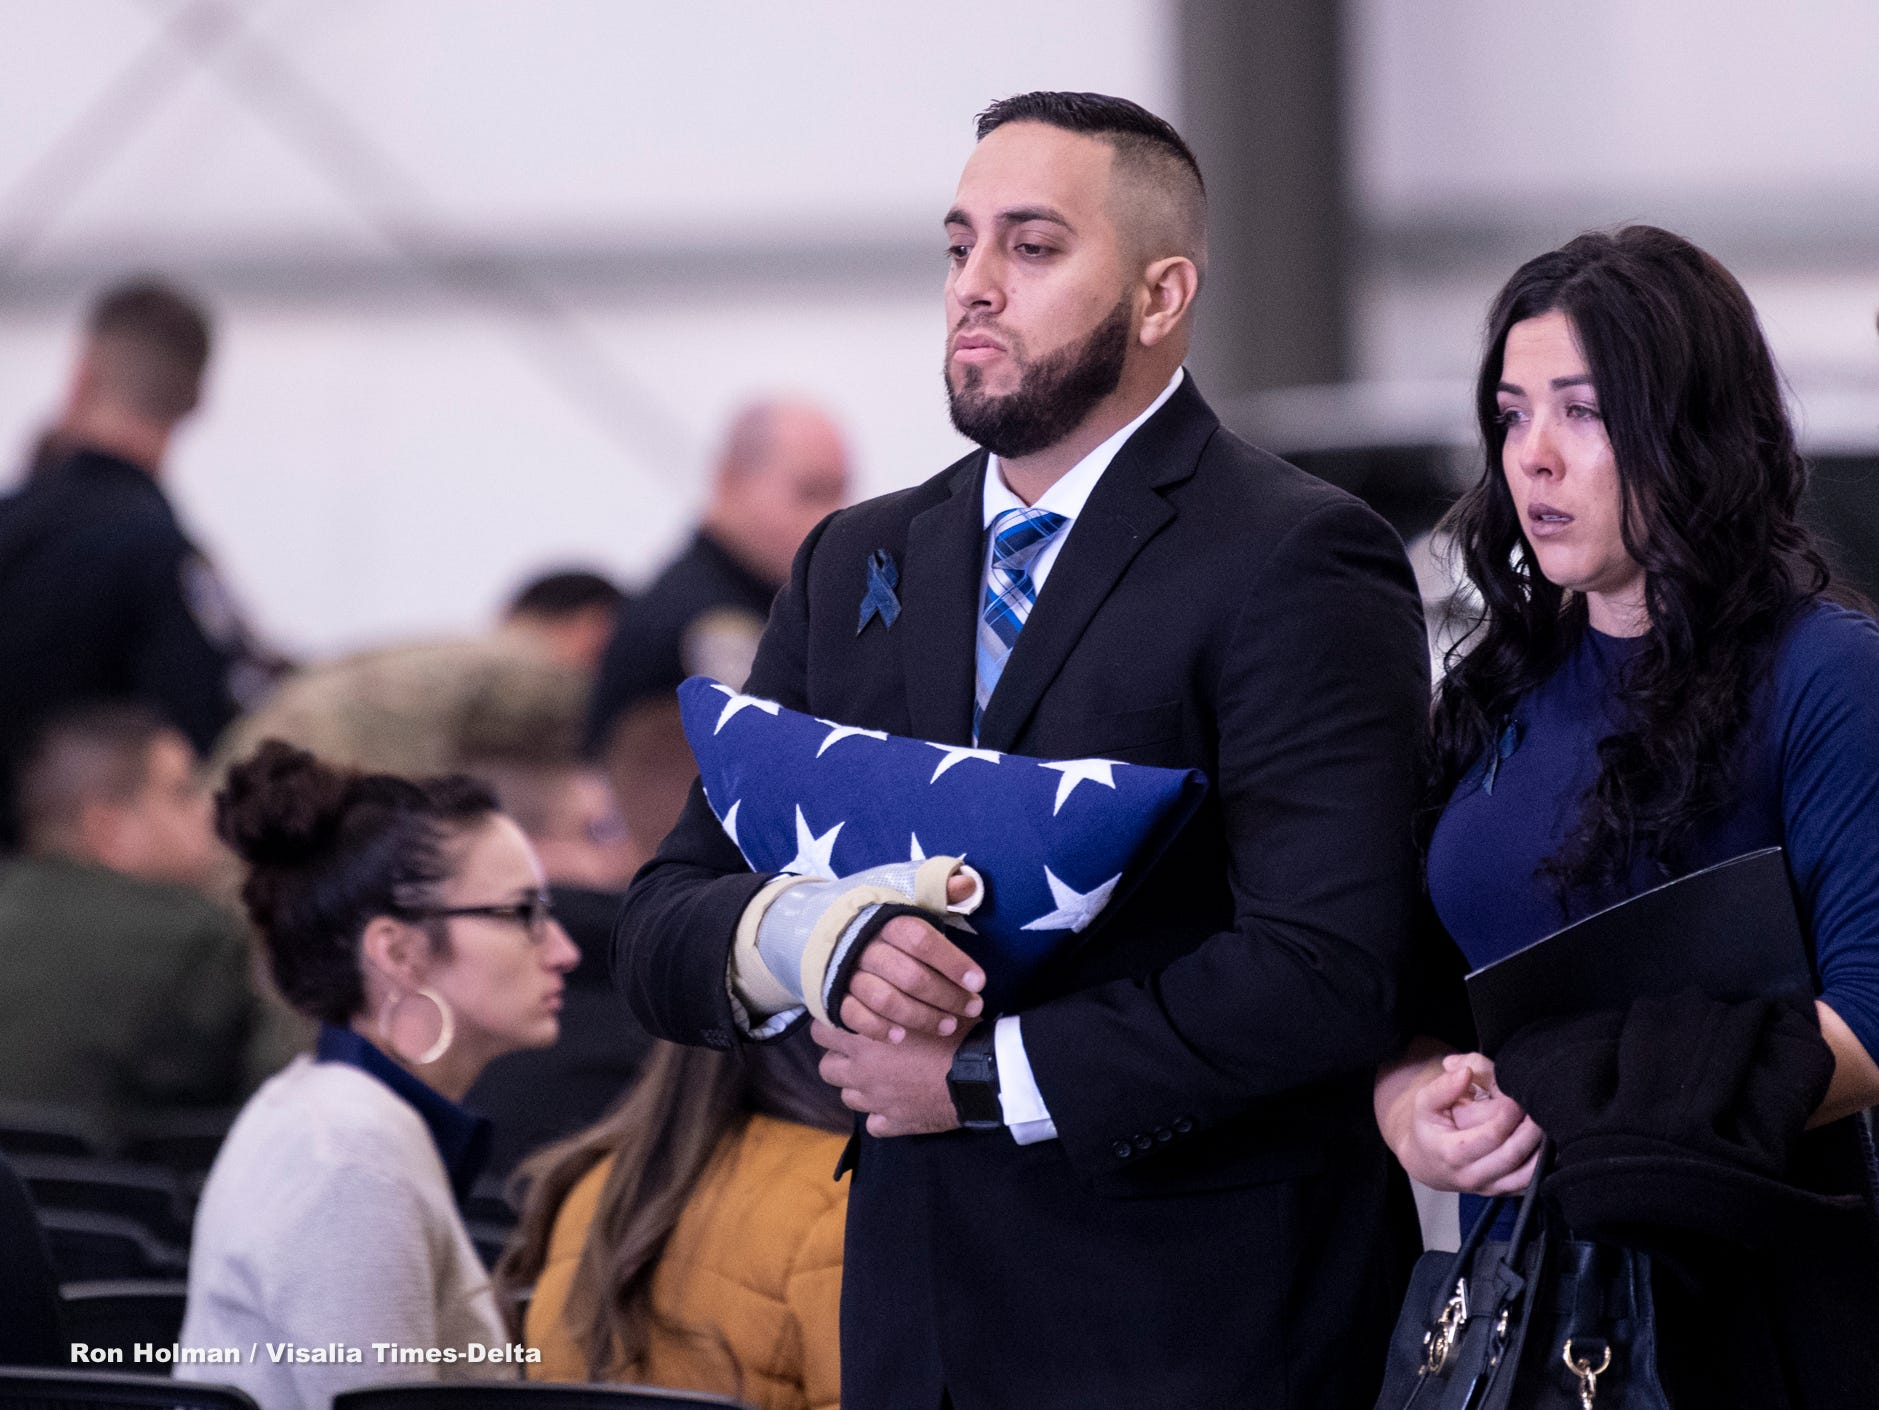 Officer Ryan Garcia, left, leaves Wednesday's memorial for his fallenTulare Police K-9 partner Bane. Bane was killed during an officer-involved shooting on December 9 of last year and is credited with saving Garcia's life.